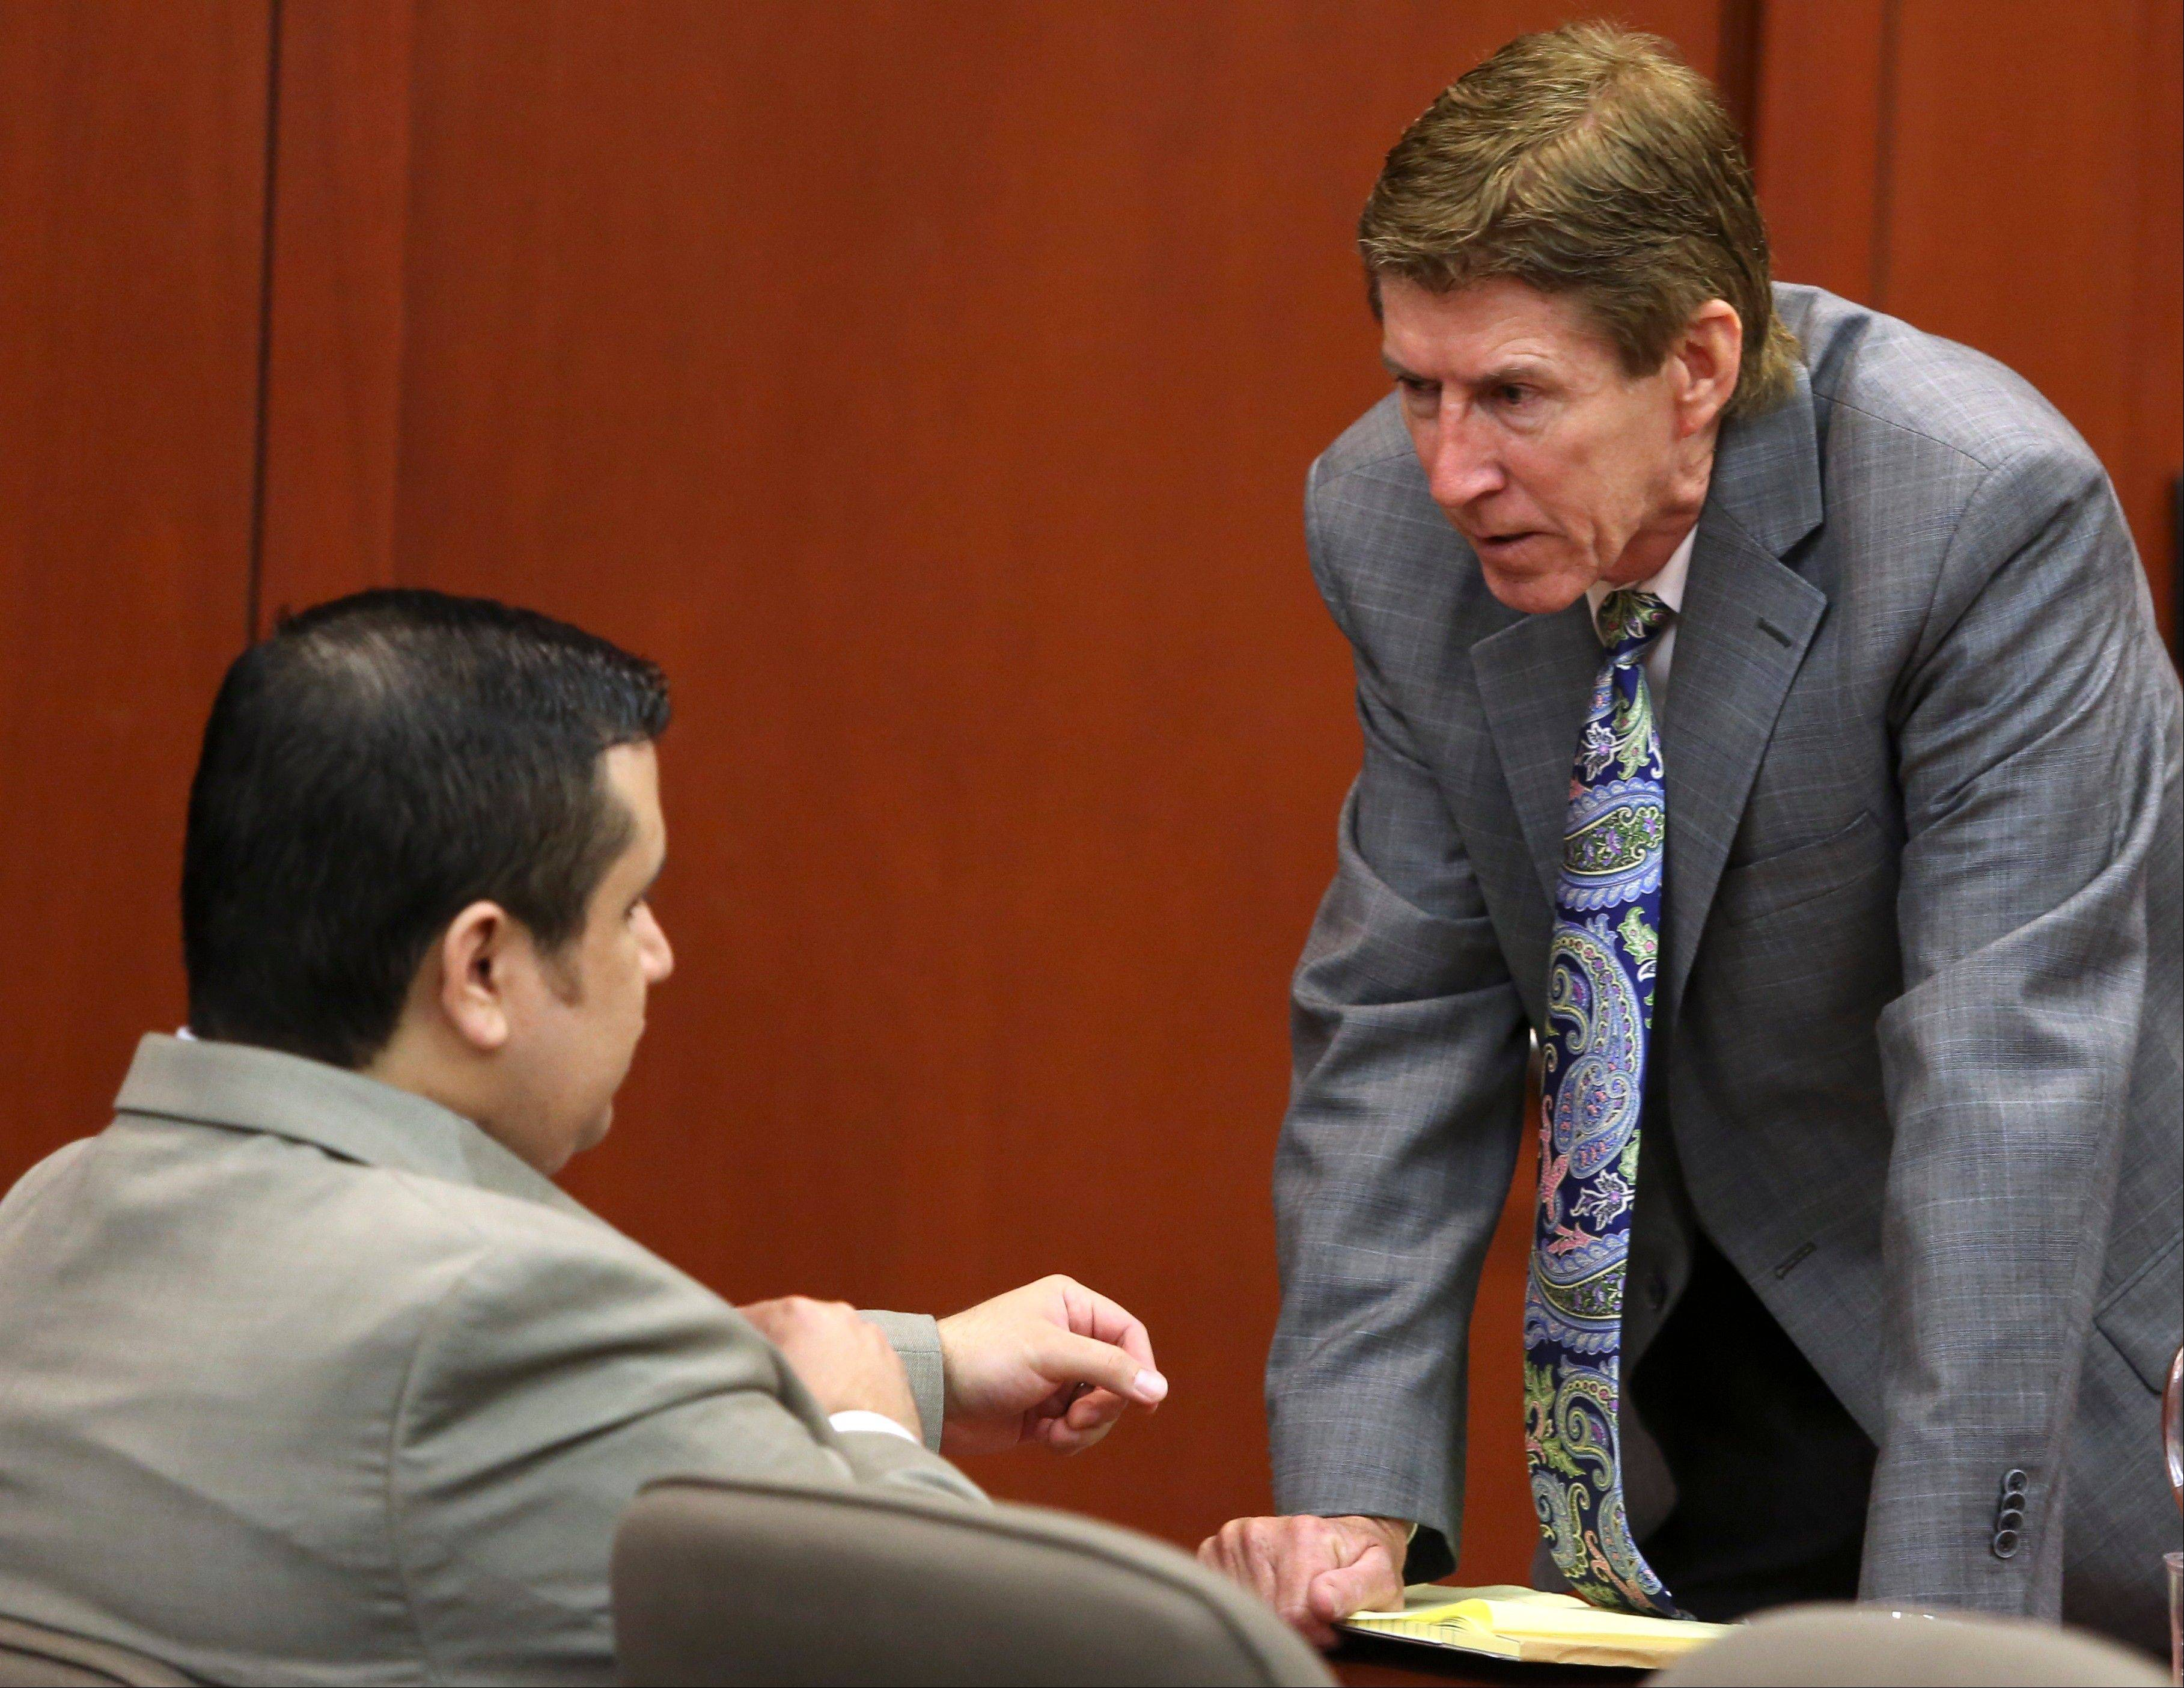 Defense attorney Mark O�Mara, right, speaks with client George Zimmerman during his trial in Seminole County circuit court in Sanford, Fla. Tuesday. Zimmerman has been charged with second-degree murder for the 2012 shooting death of Trayvon Martin.